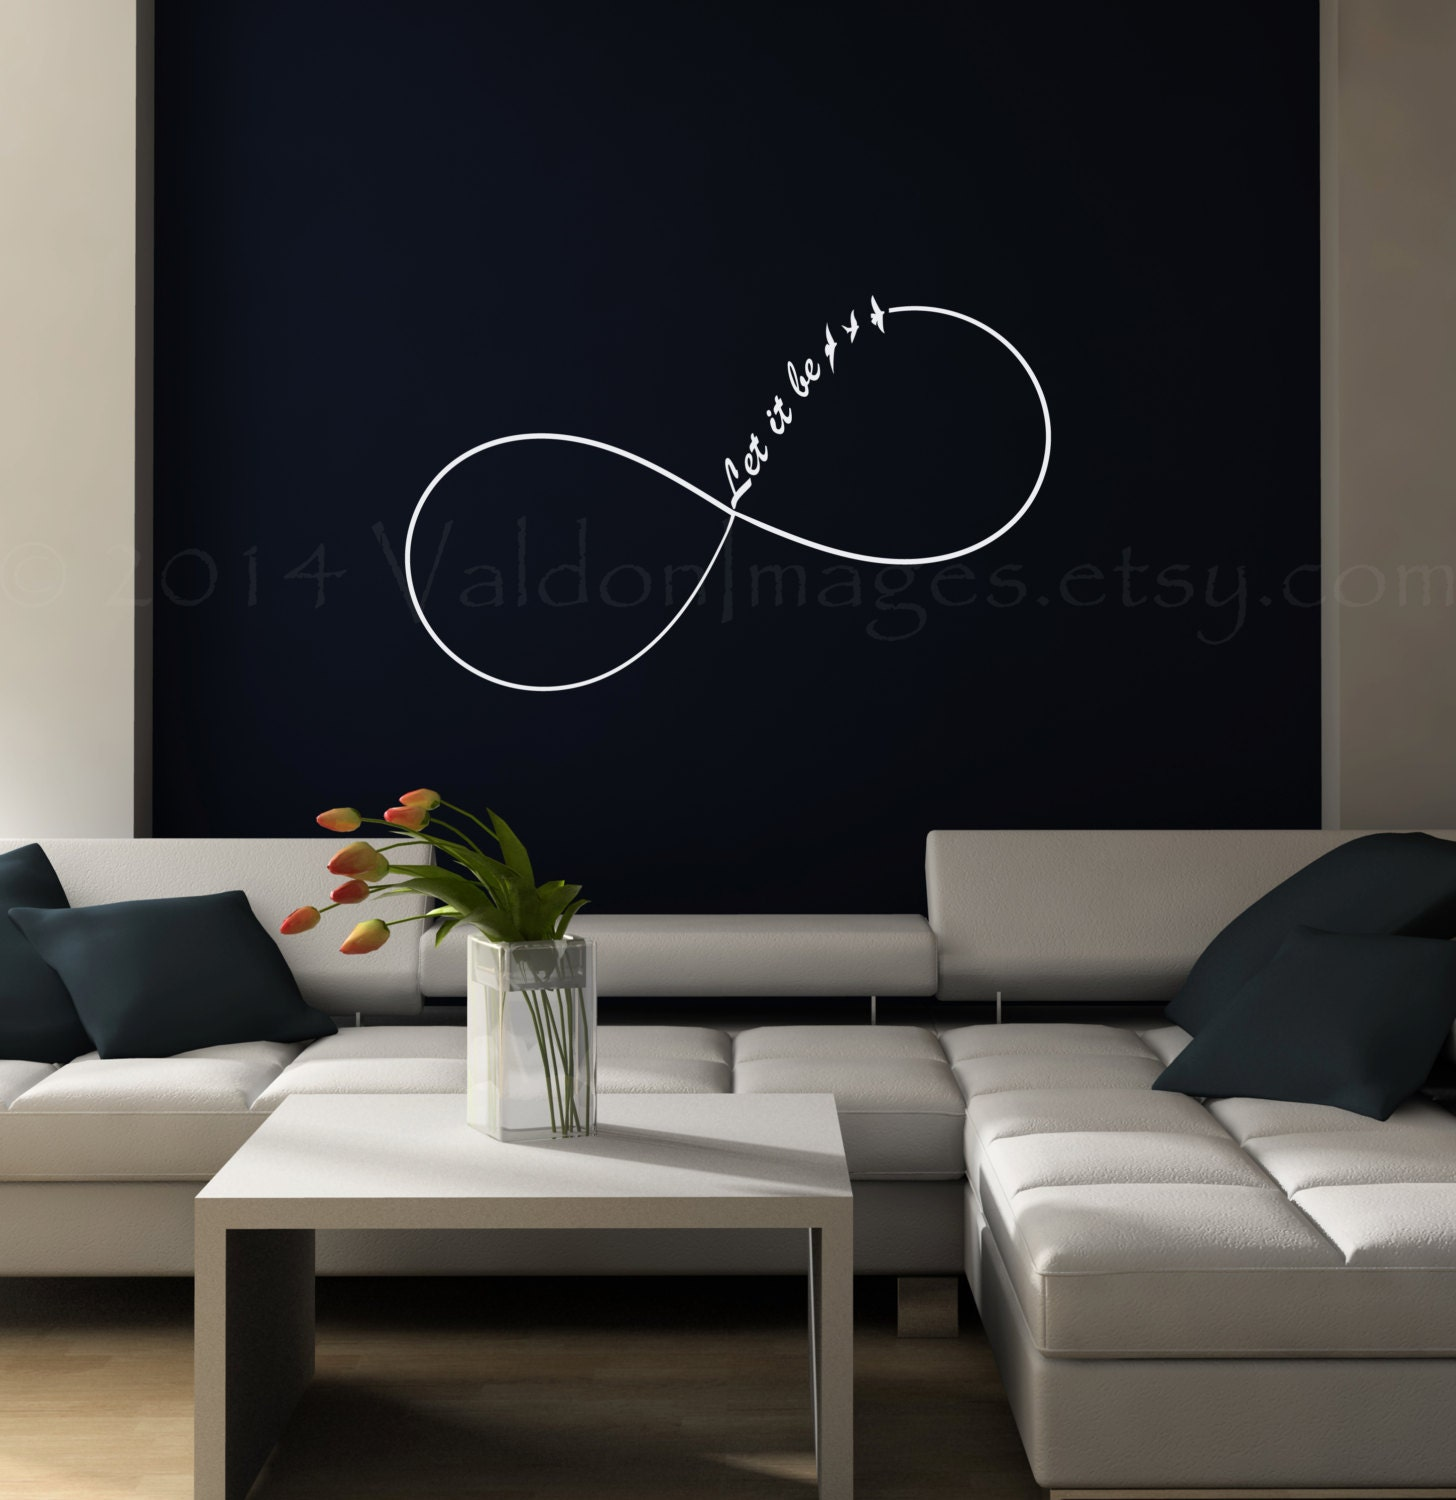 Wall decals for teens teens can make their mark without Wall stickers for bedrooms